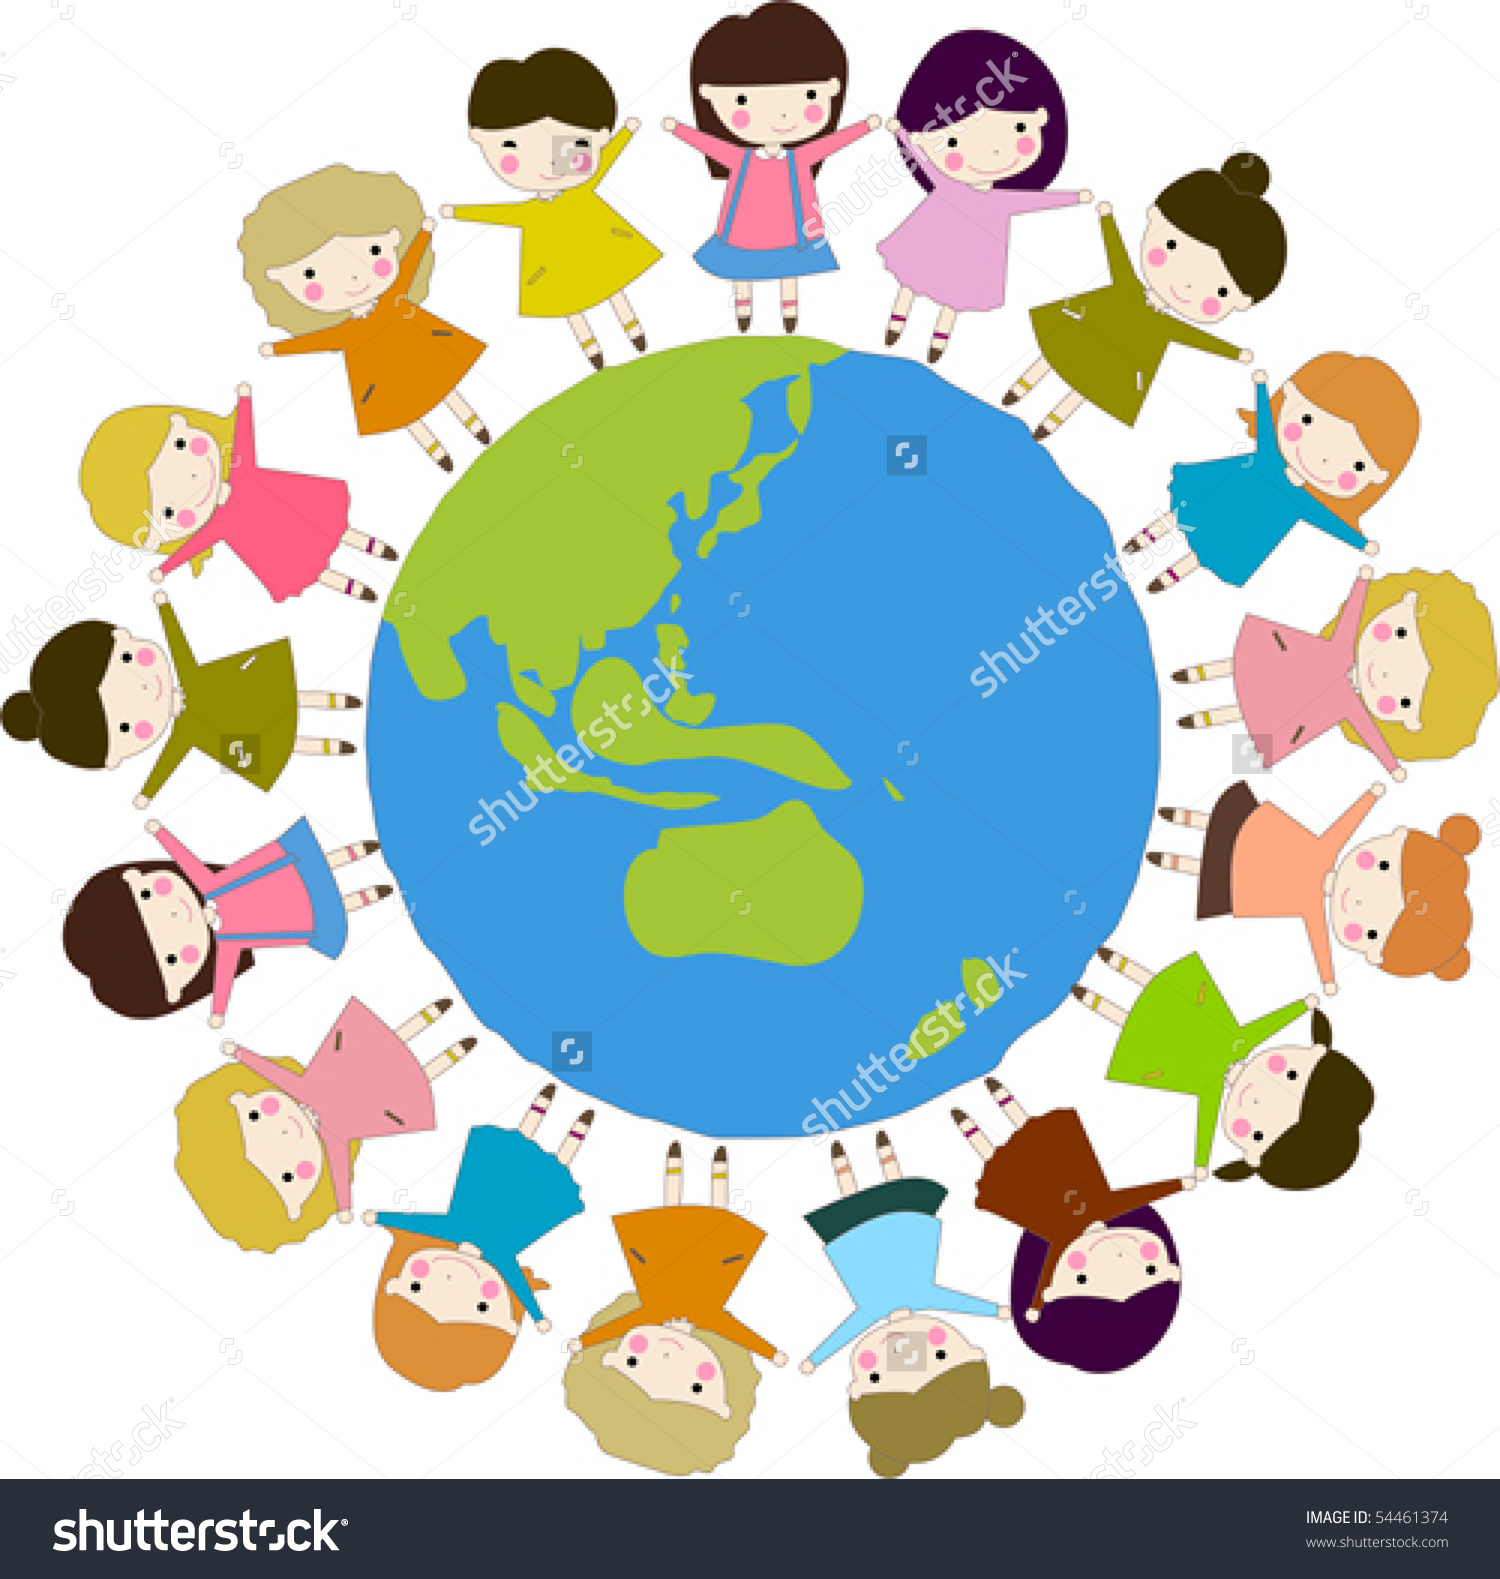 Kids holding hands around the world clipart clipart library Around The World Clipart | Free download best Around The World ... clipart library